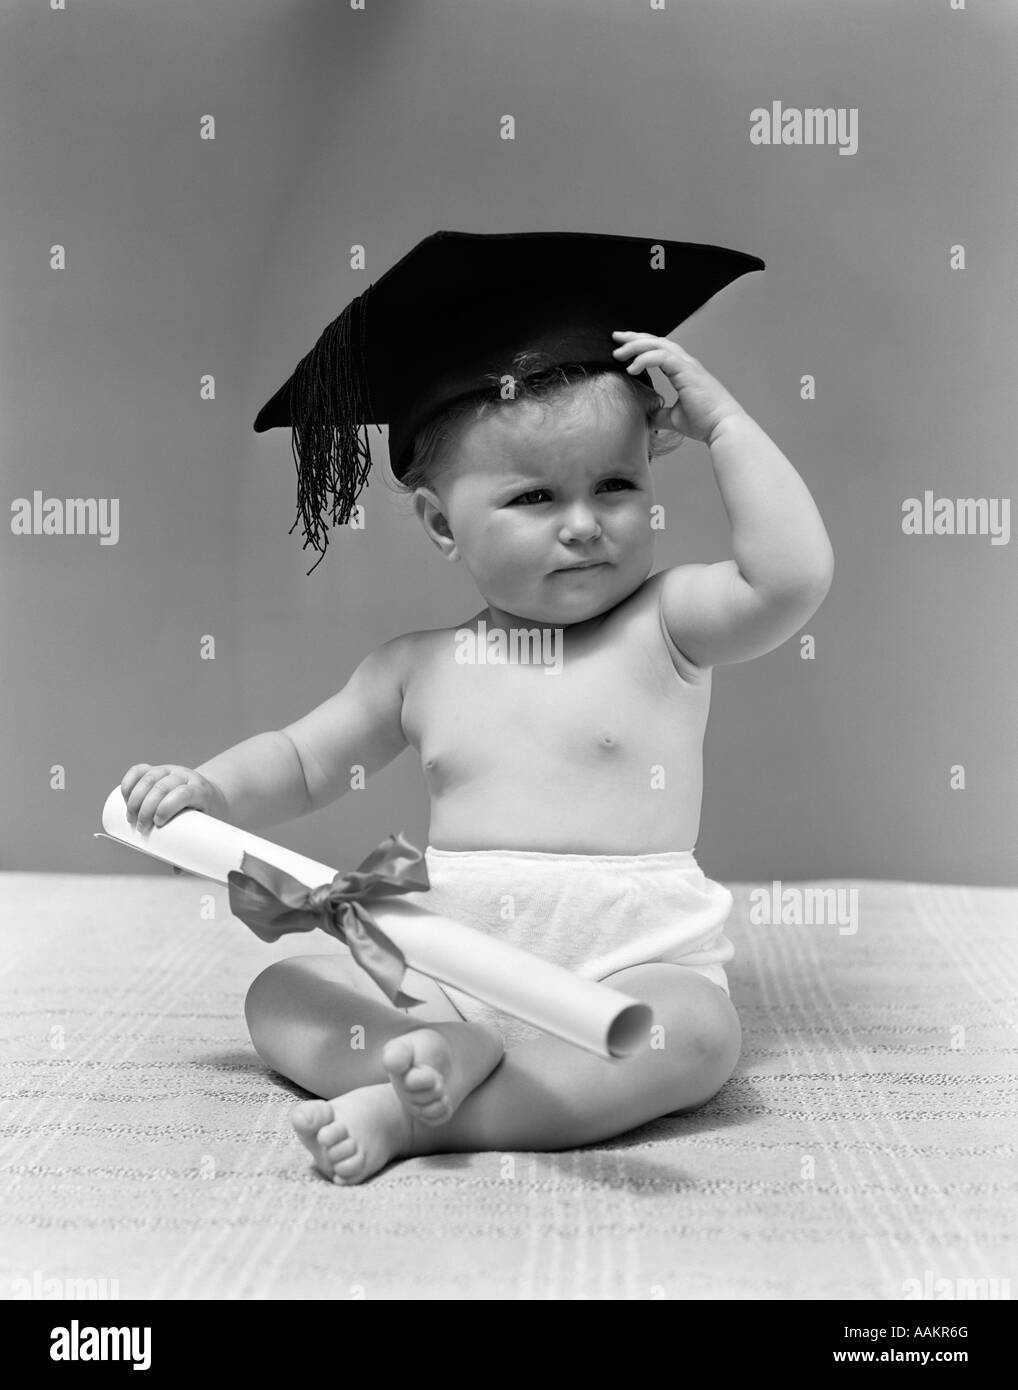 d31b77fdb Babies Wearing Hats Black and White Stock Photos & Images - Alamy